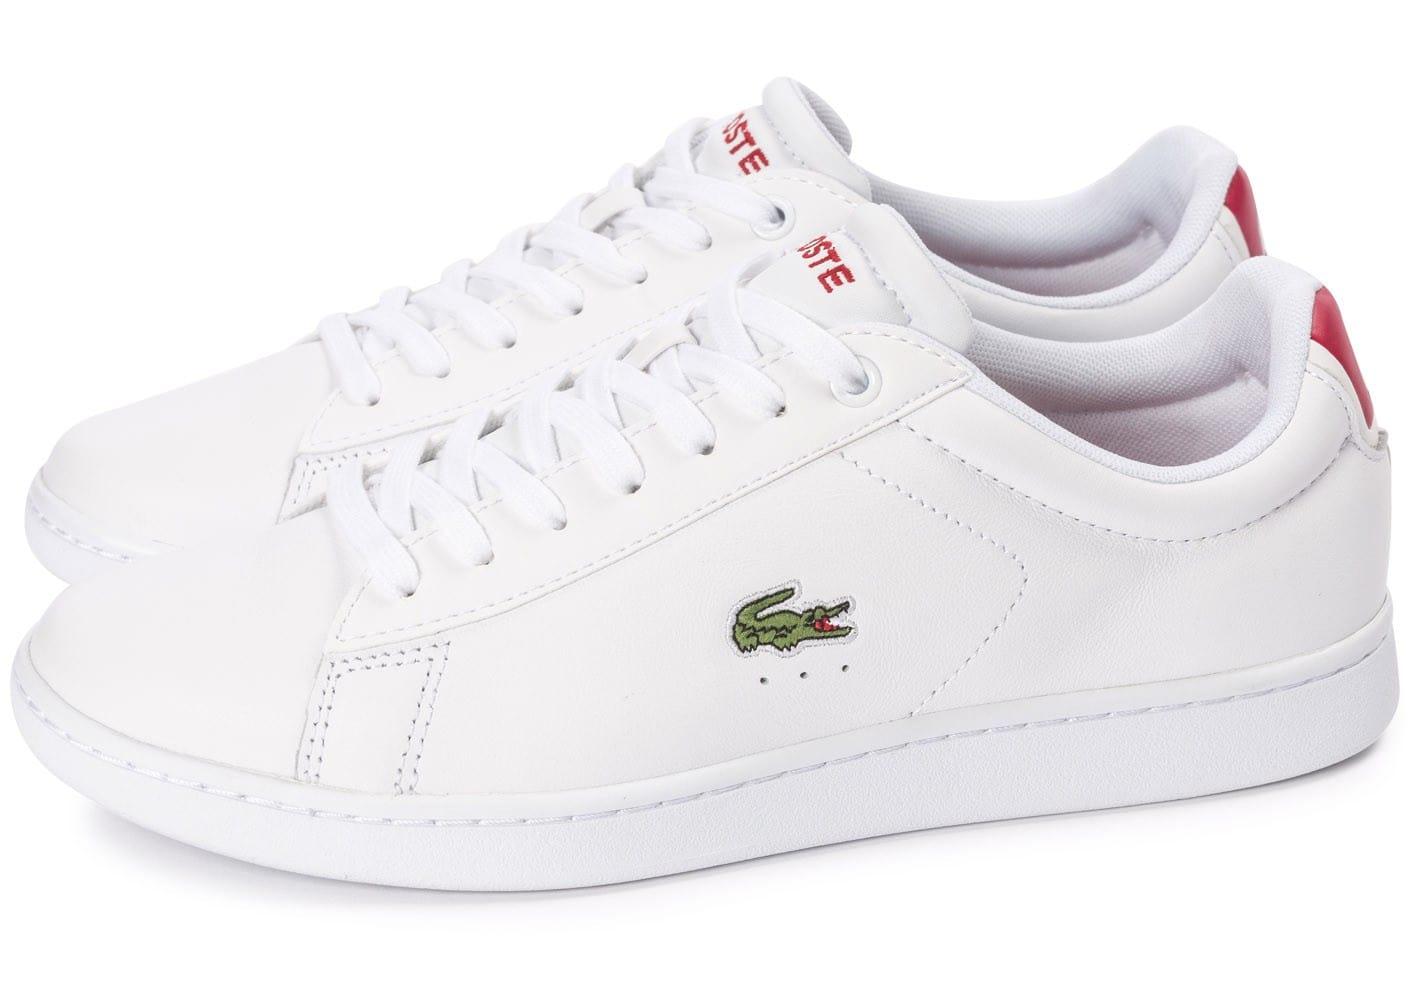 Chaussures Lacoste Carnaby blanches femme